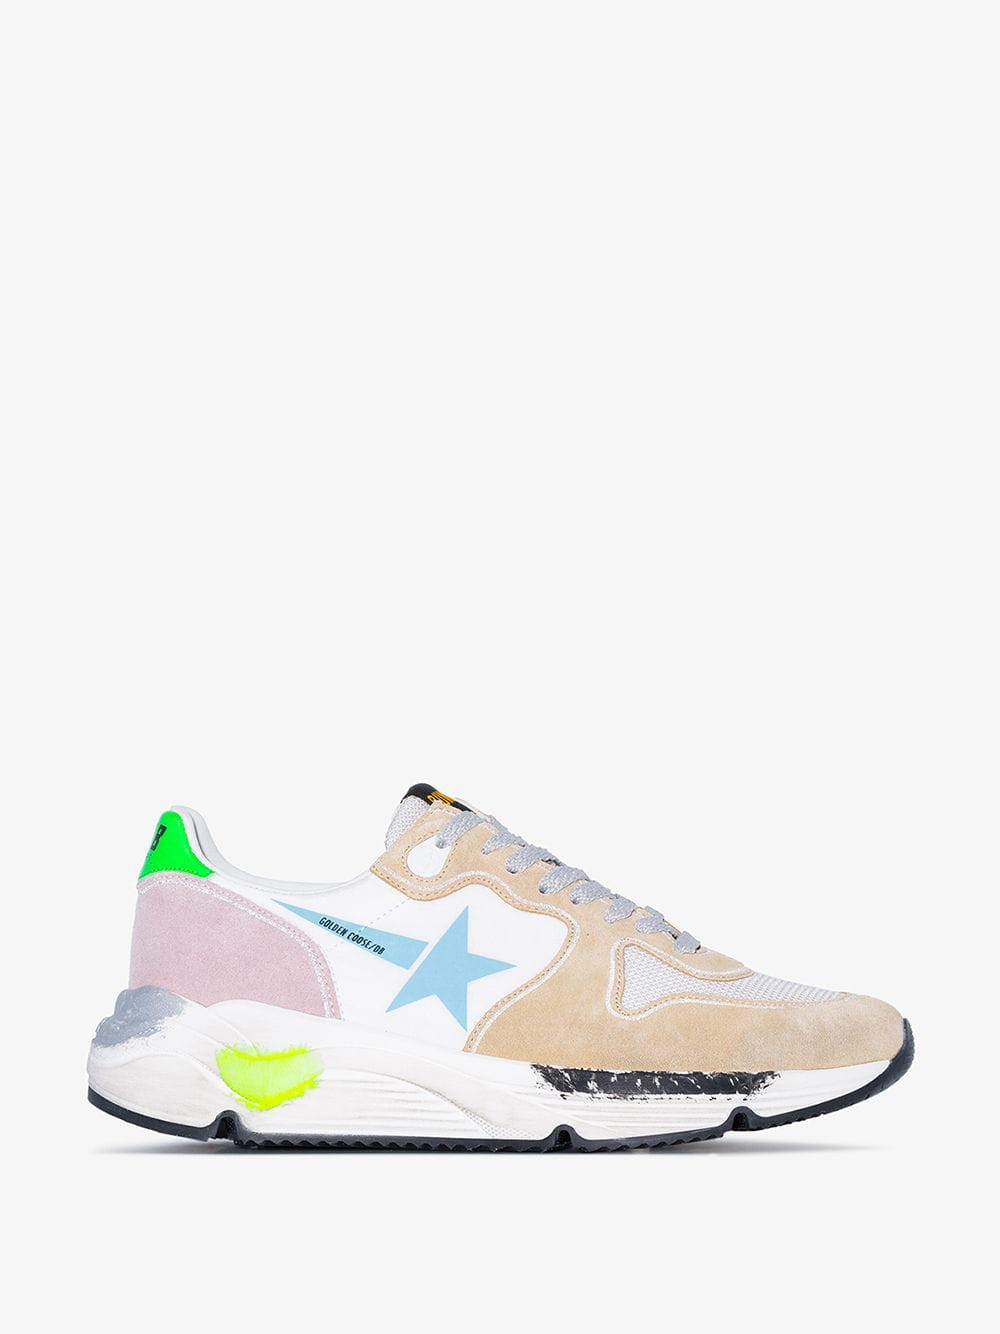 Golden Goose Deluxe Brand Golden Goose Multicoloured Running sole suede leather sneakers in blue / white